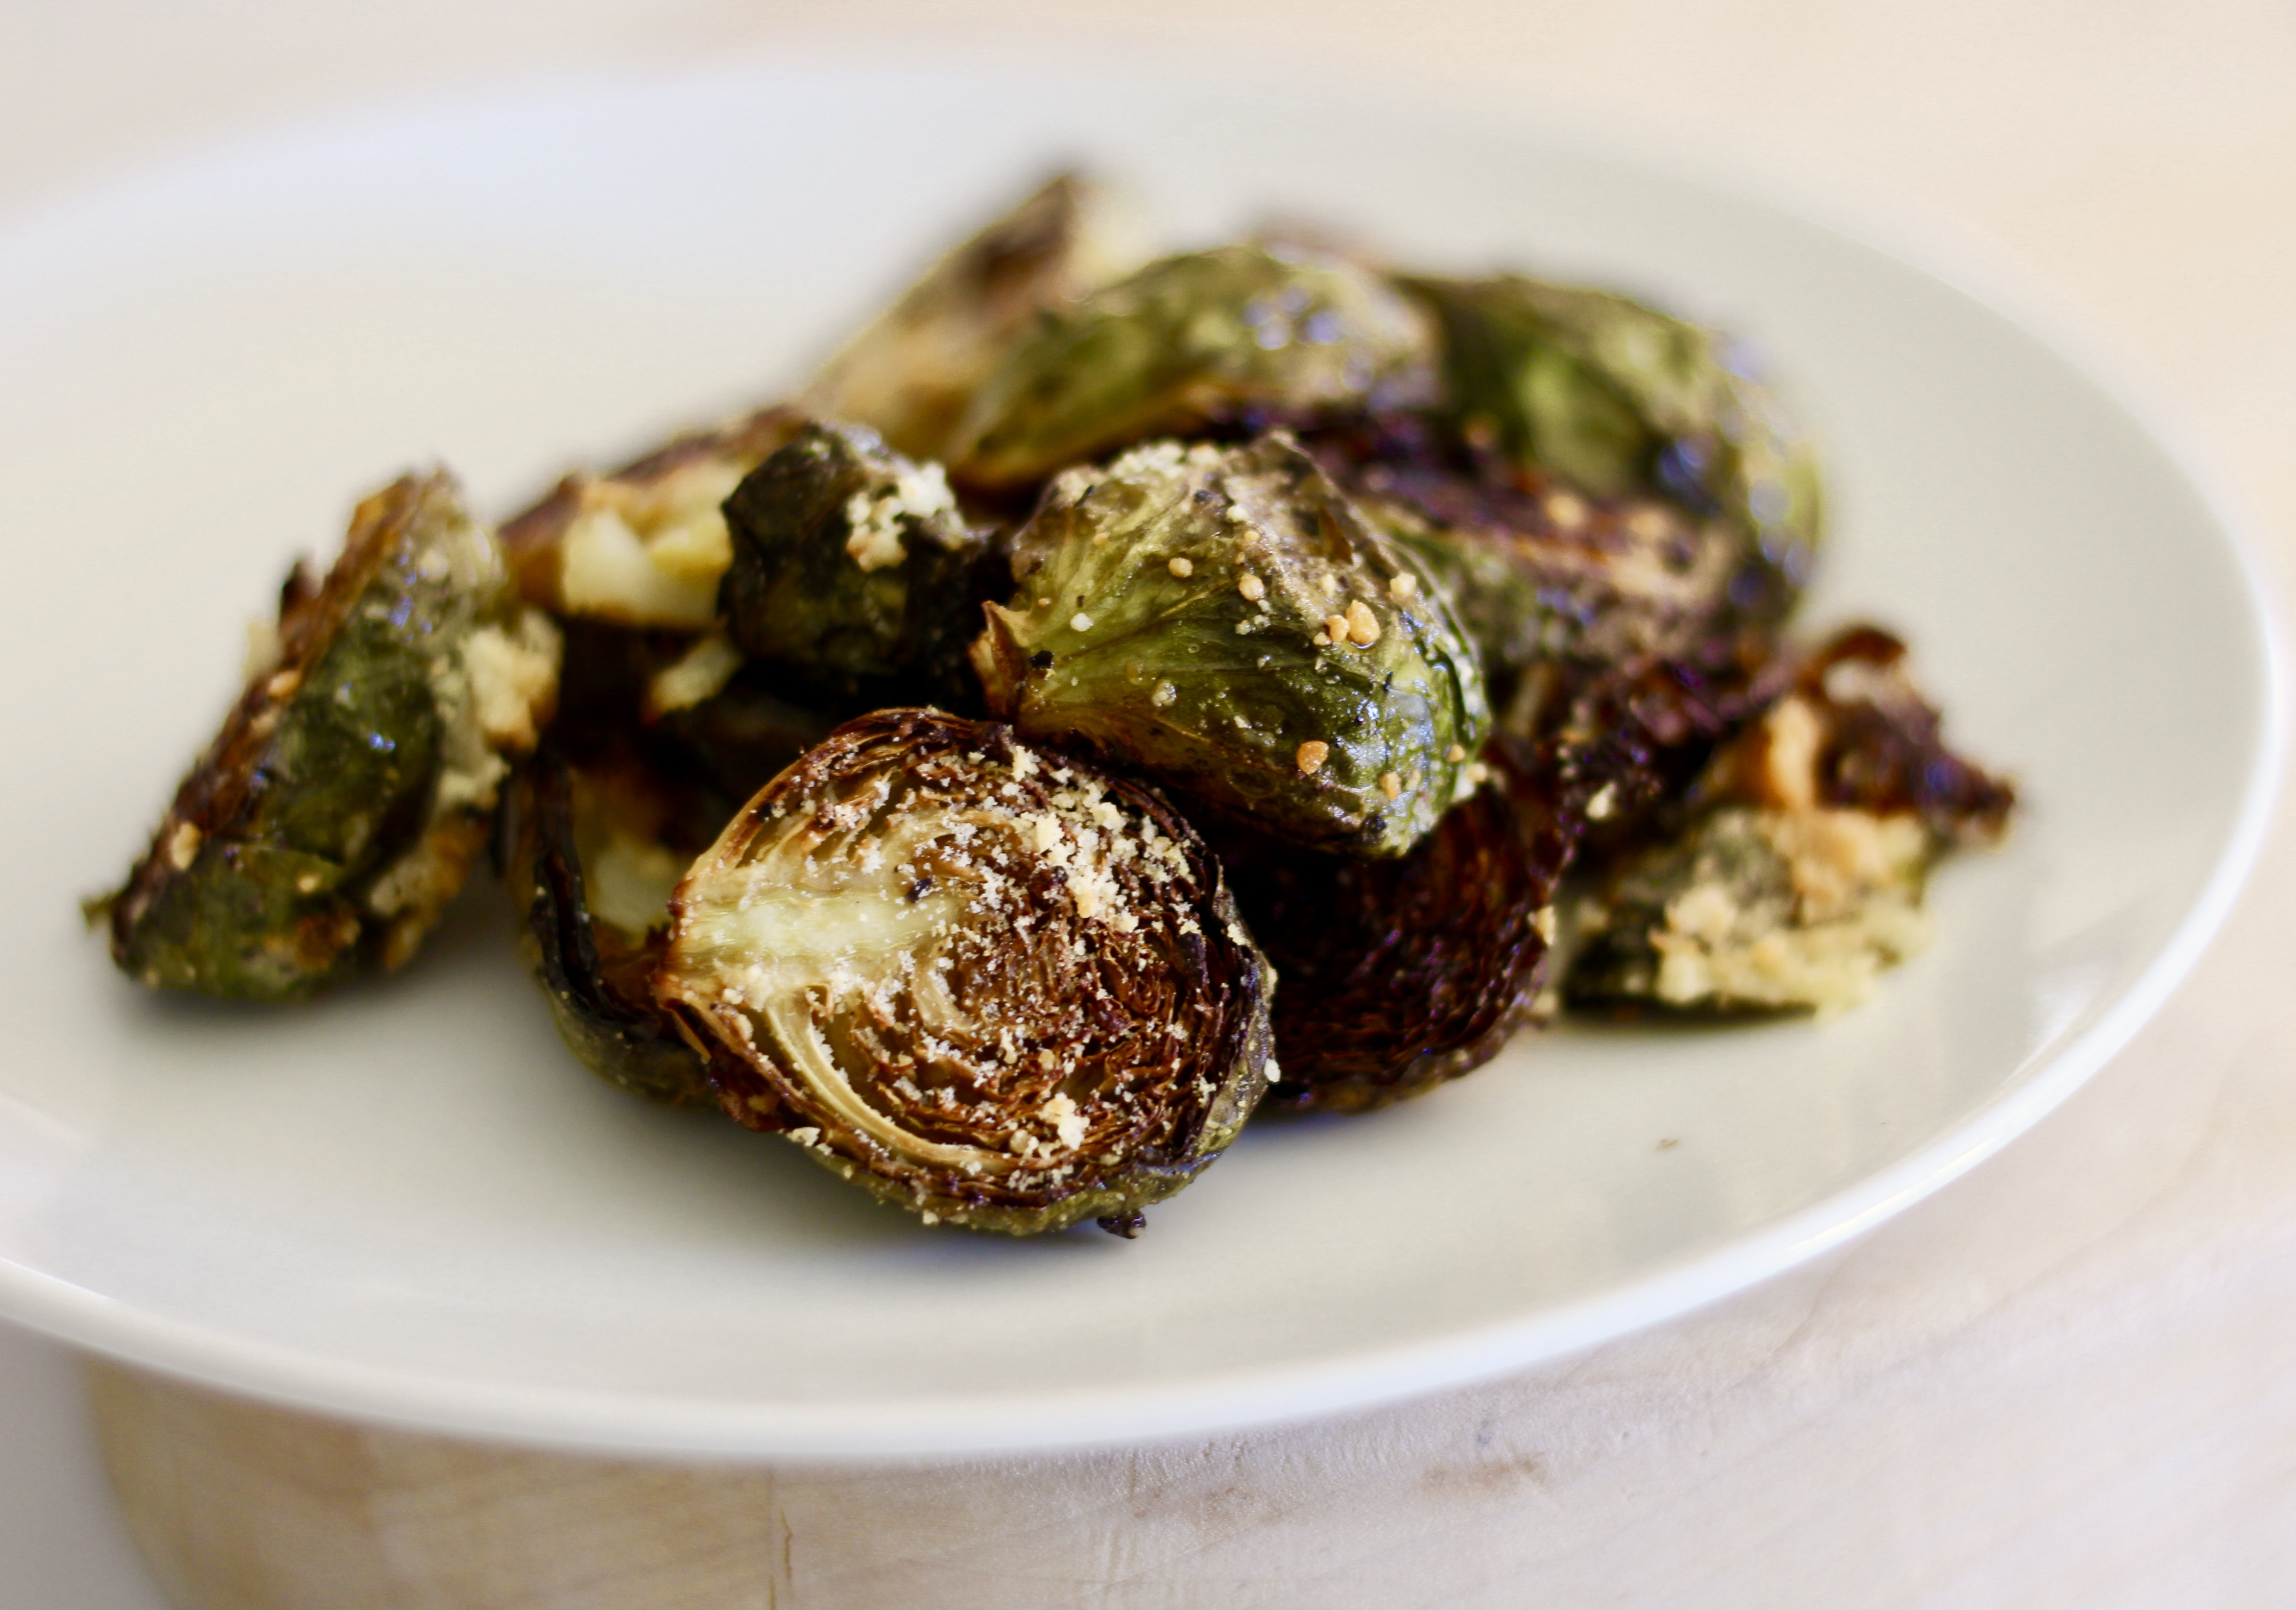 Garlic-Parmesan Roasted Brussels Sprouts